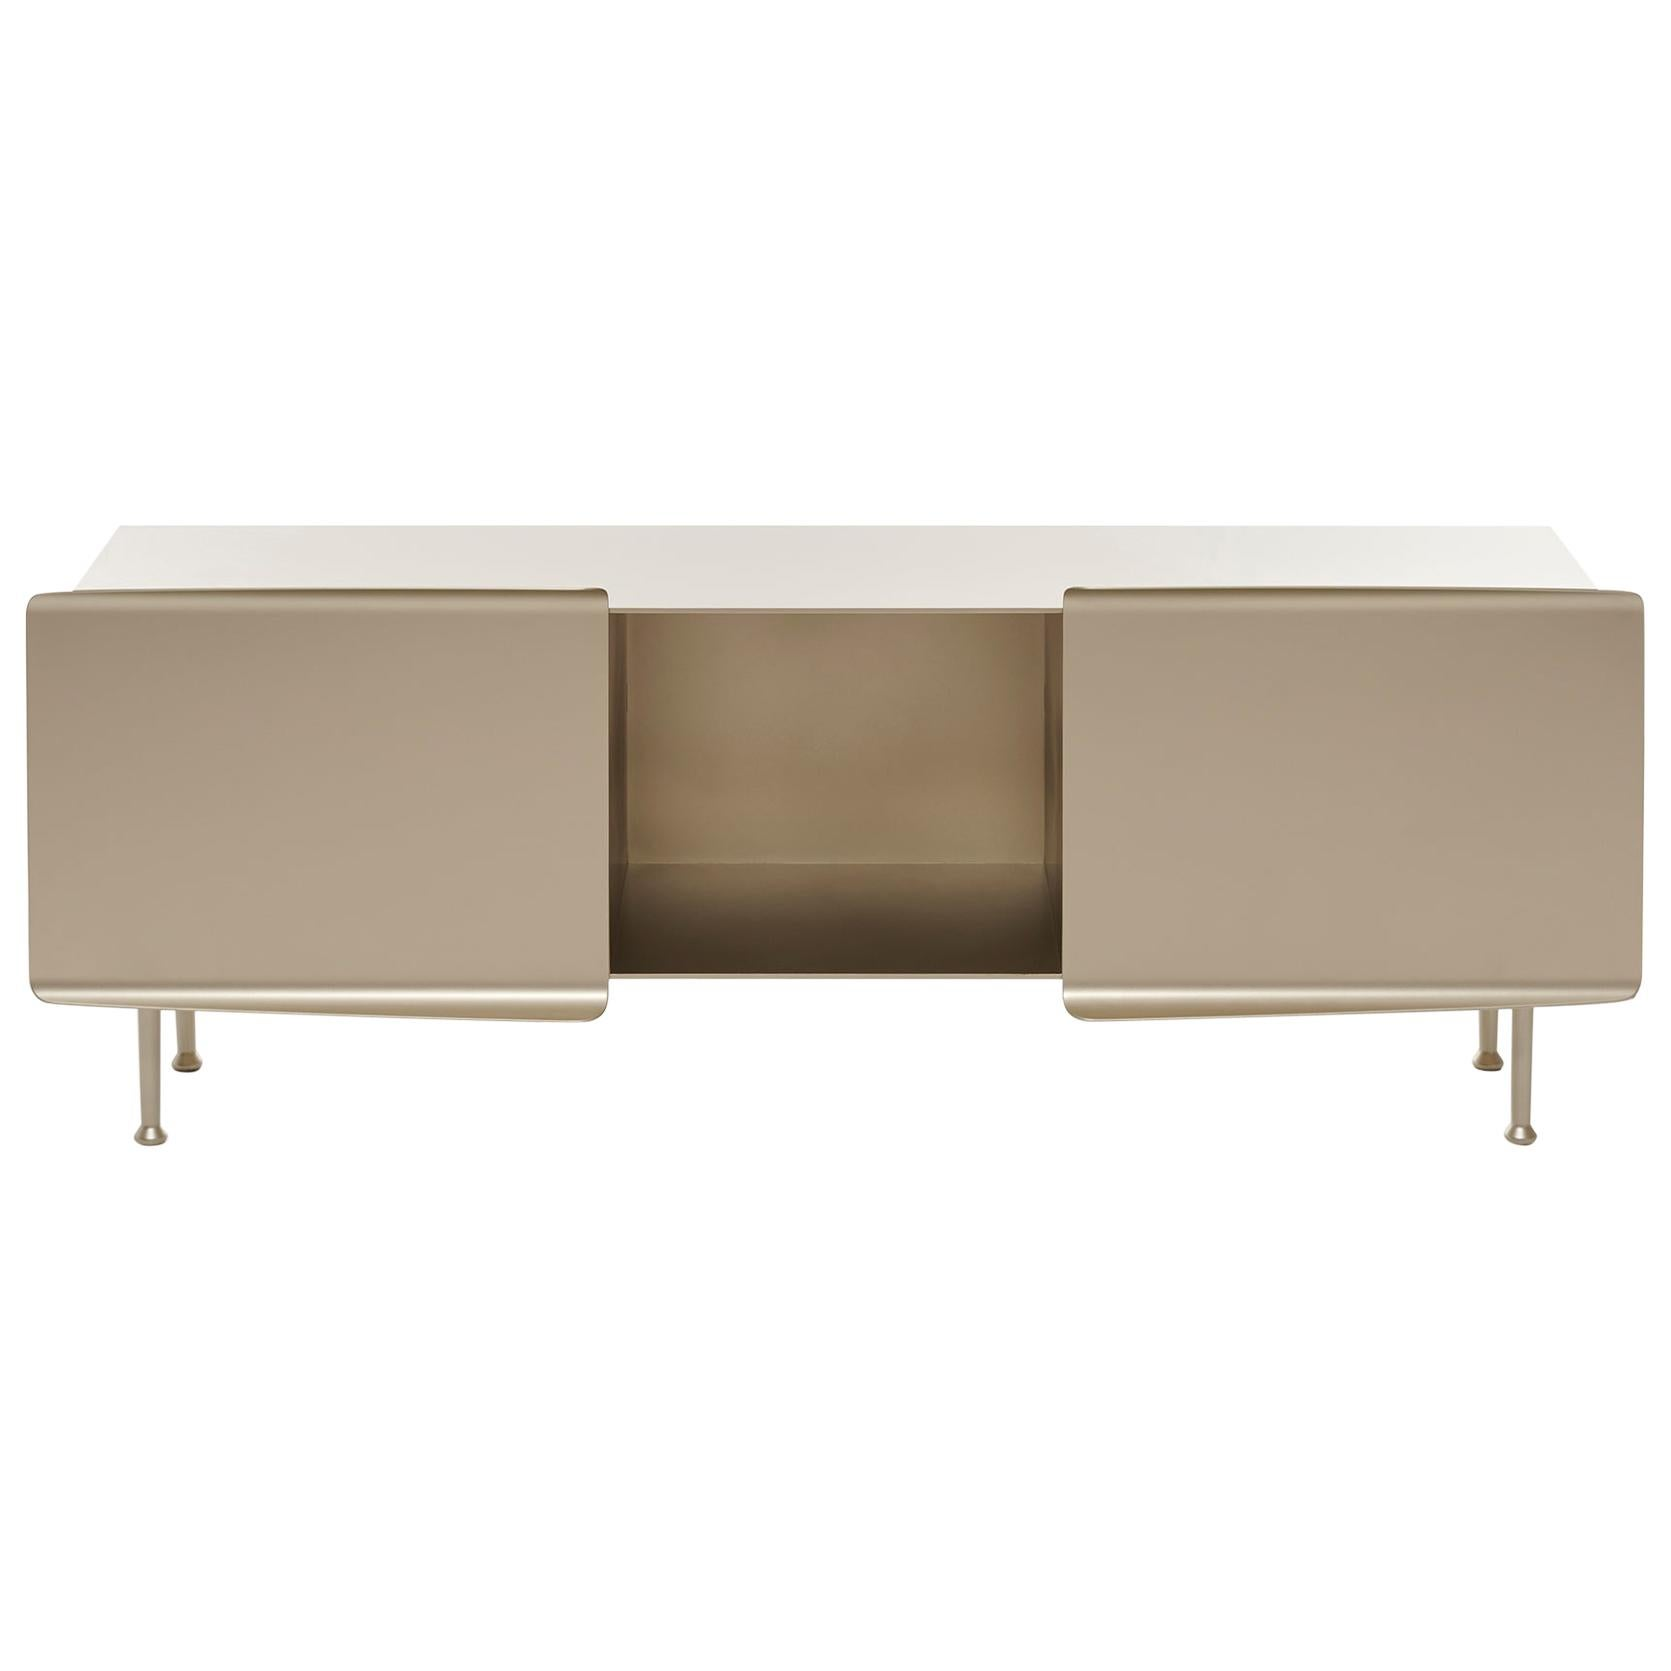 "21st Century FUCINA Pauline Deltour ""356"" Low Sideboard Champagne"